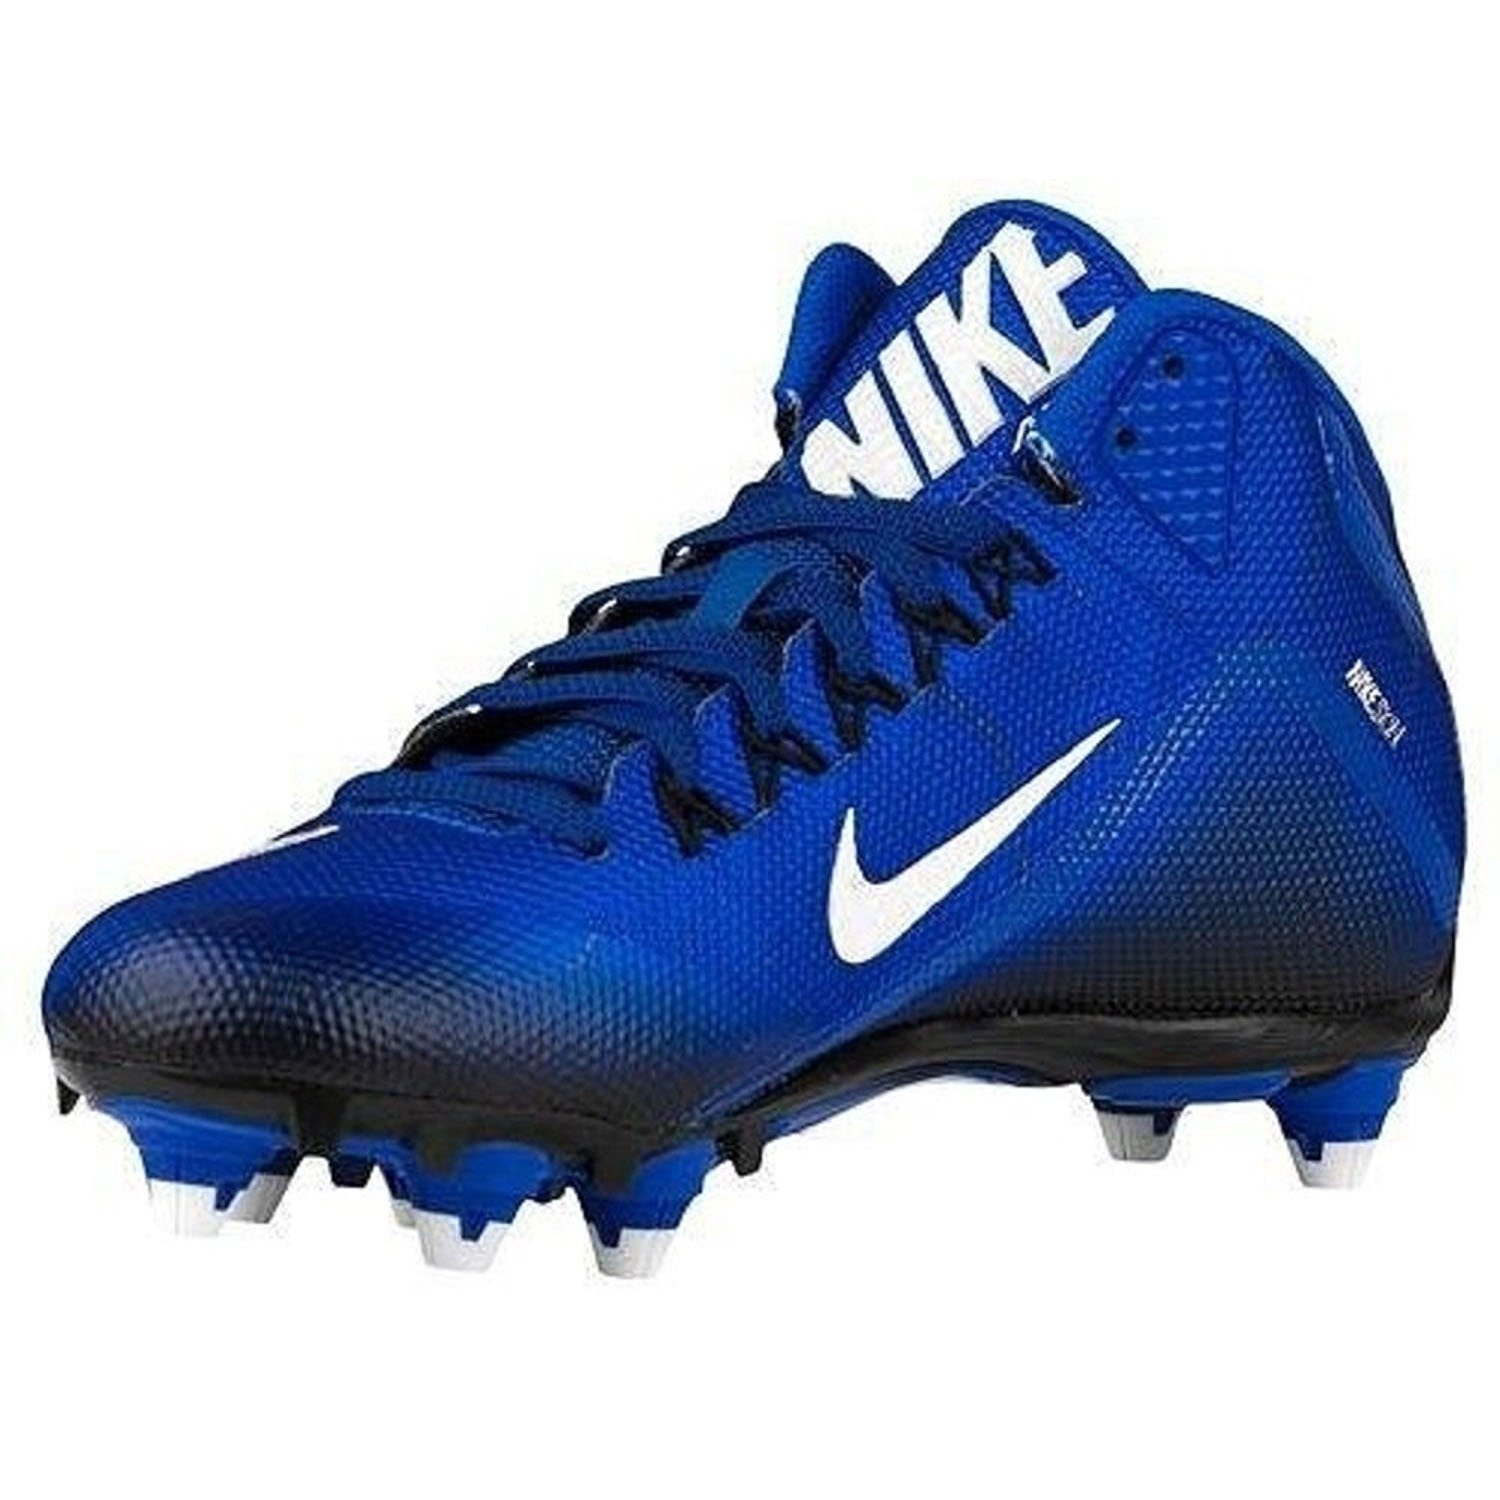 NIKE Alpha Pro 2 3/4 TD Football Cleats (12, Sport Royal/Black/White) Variation